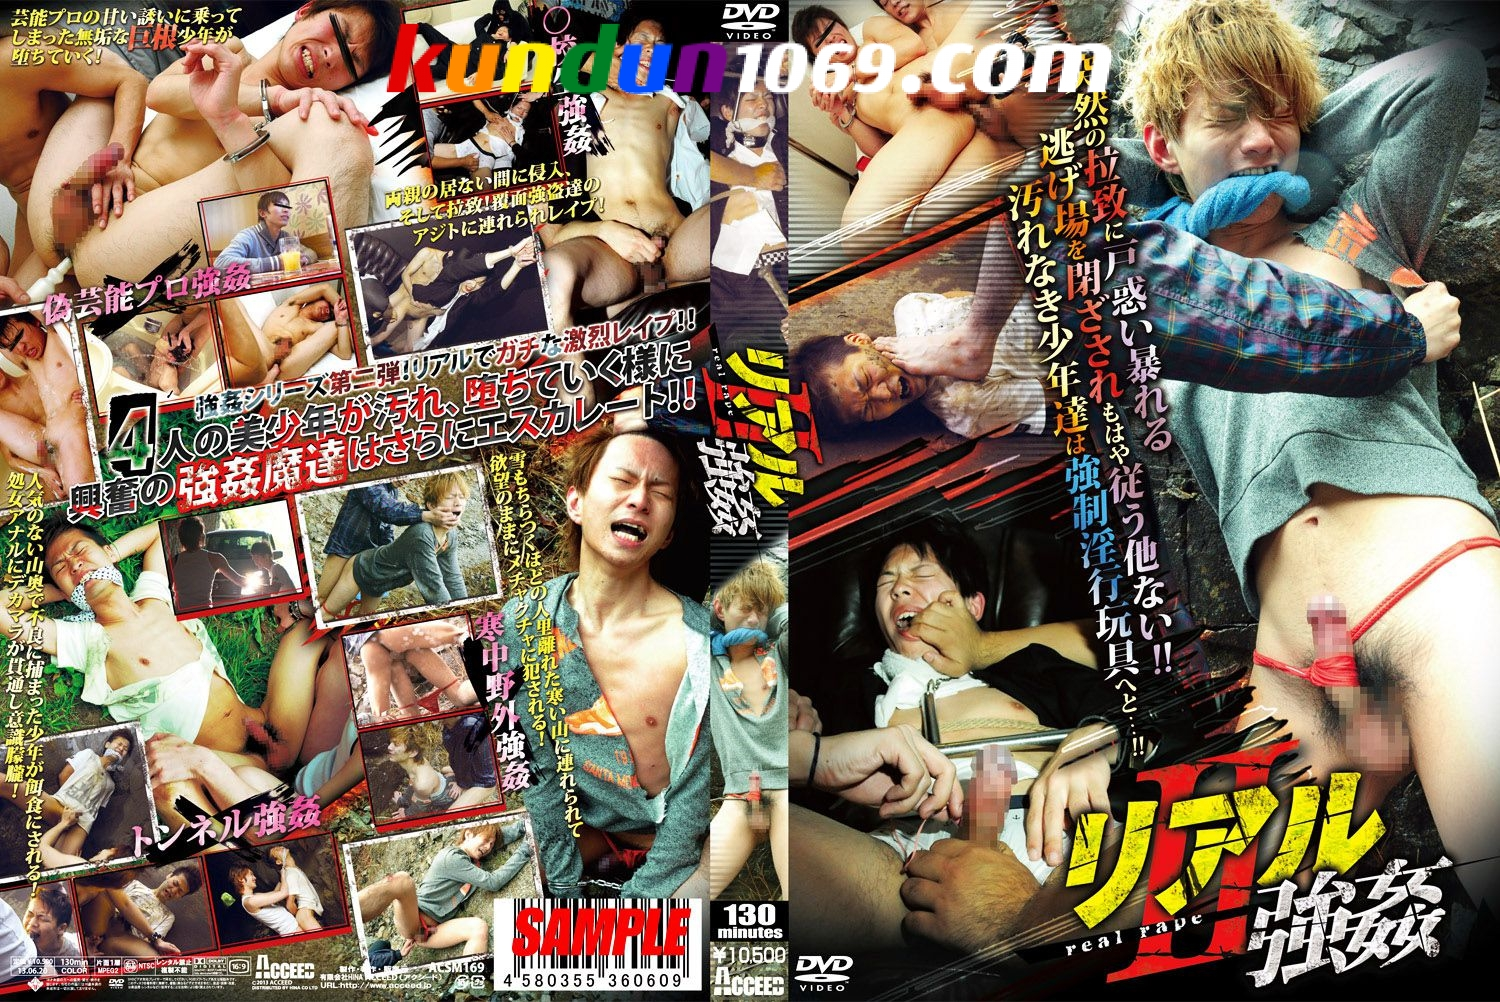 [ACCEED] REAL RAPE 2 (リアル強姦 II) [HD720p]